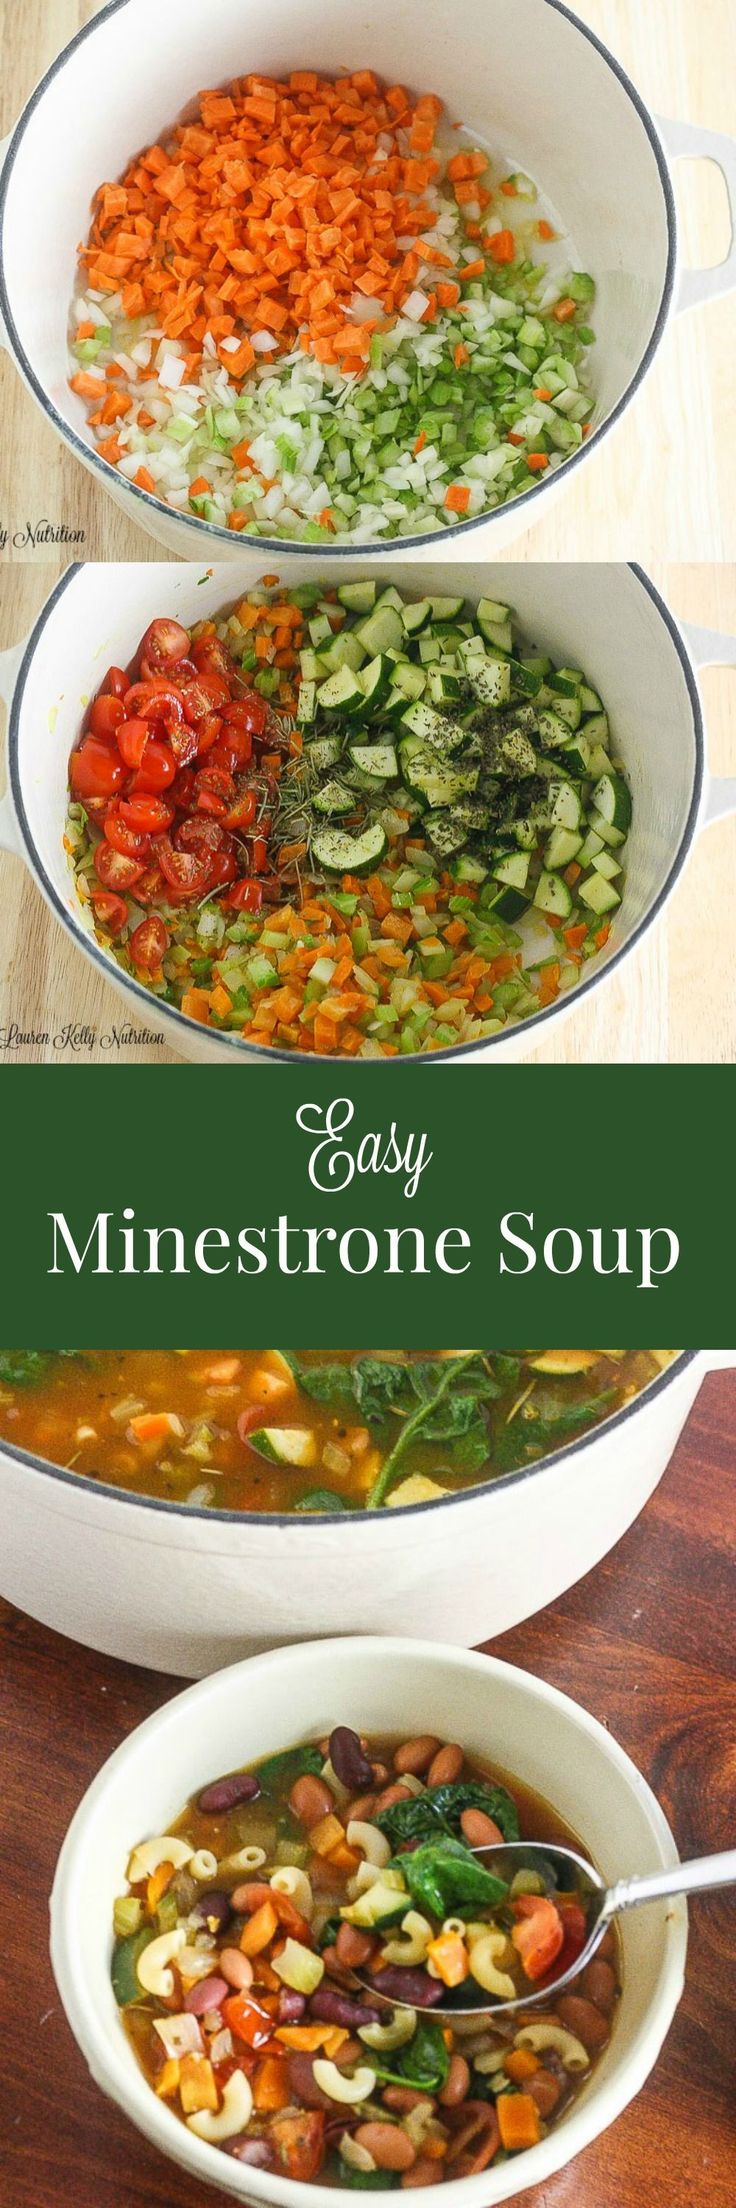 Healthy and delicious, this Easy Minestrone Soup can be made in 30 minutes! From…